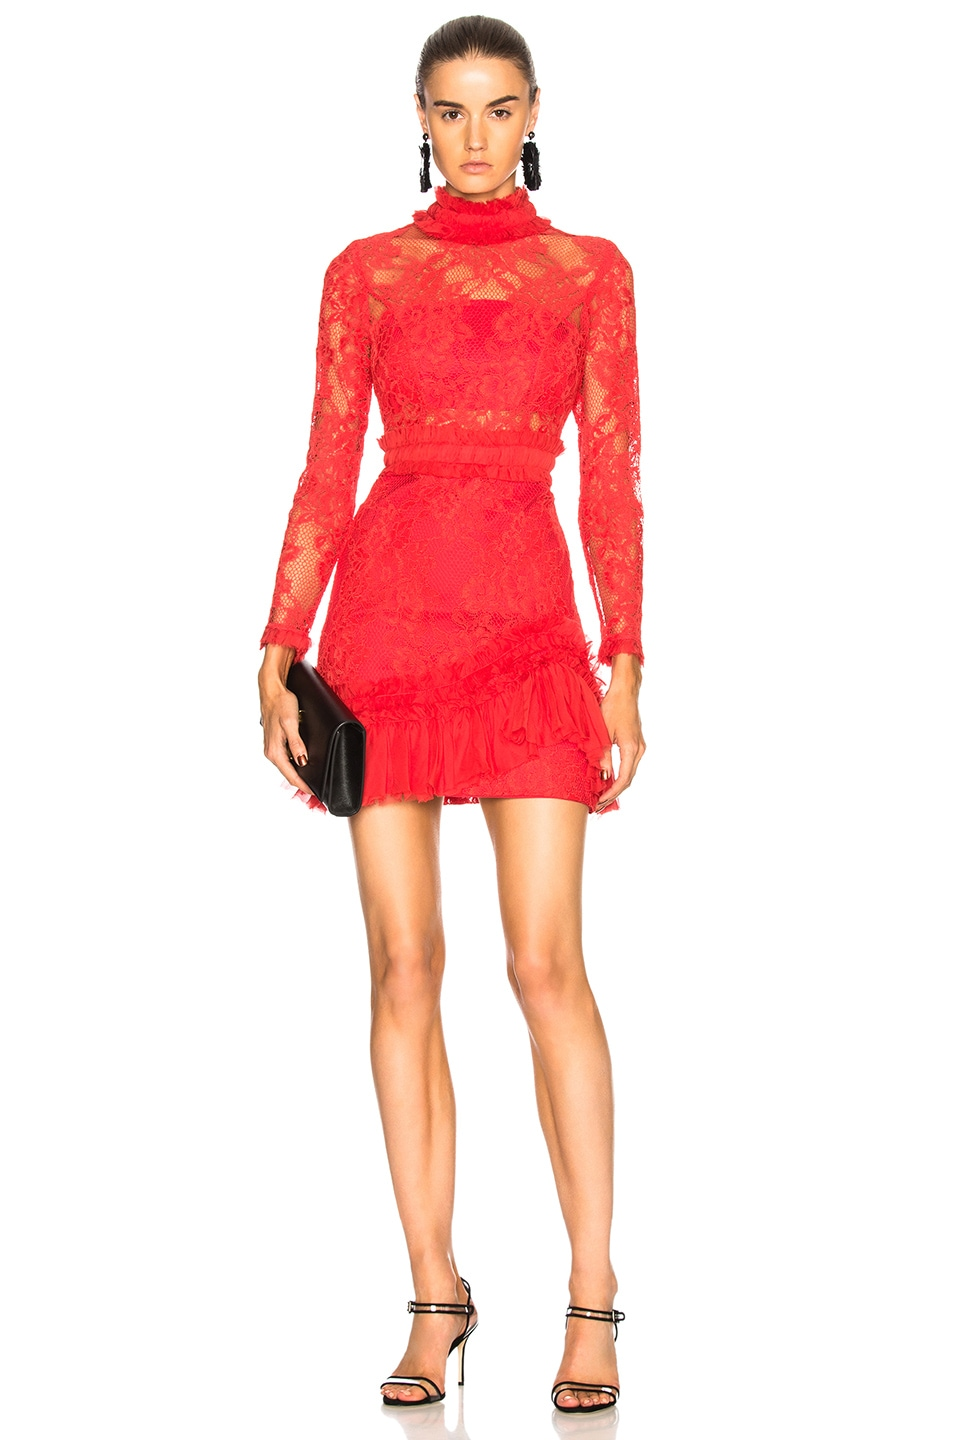 f41cd9049aa Image 1 of Alexis Wilhemina Dress in Red